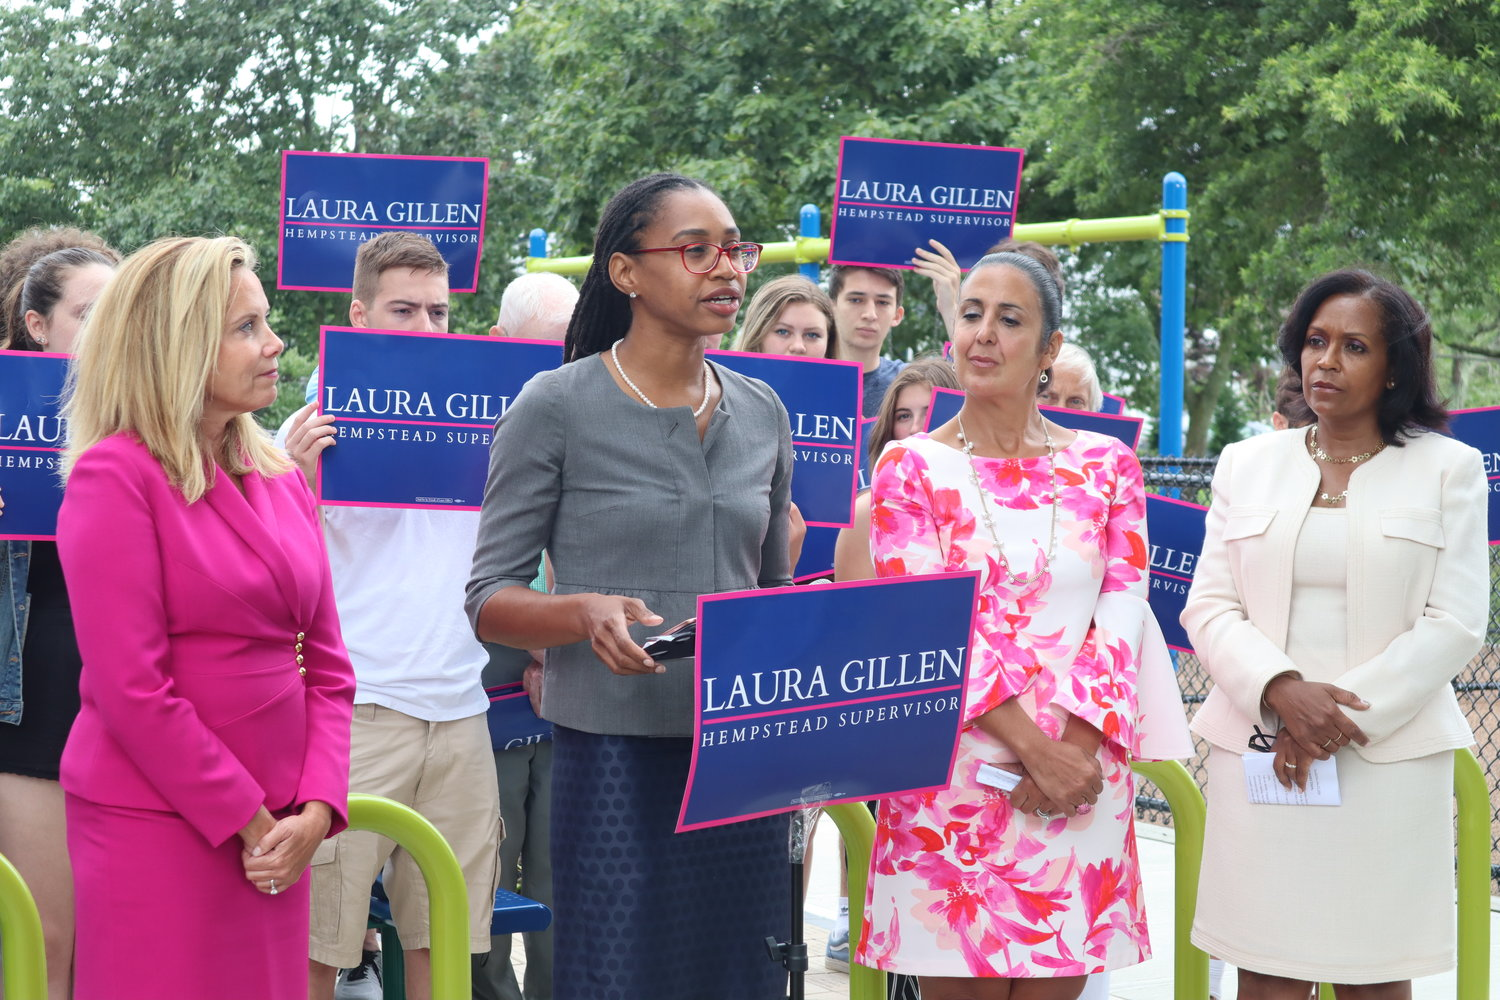 Shari James is running to represent her hometown of the Valley Stream and the Elmont area.